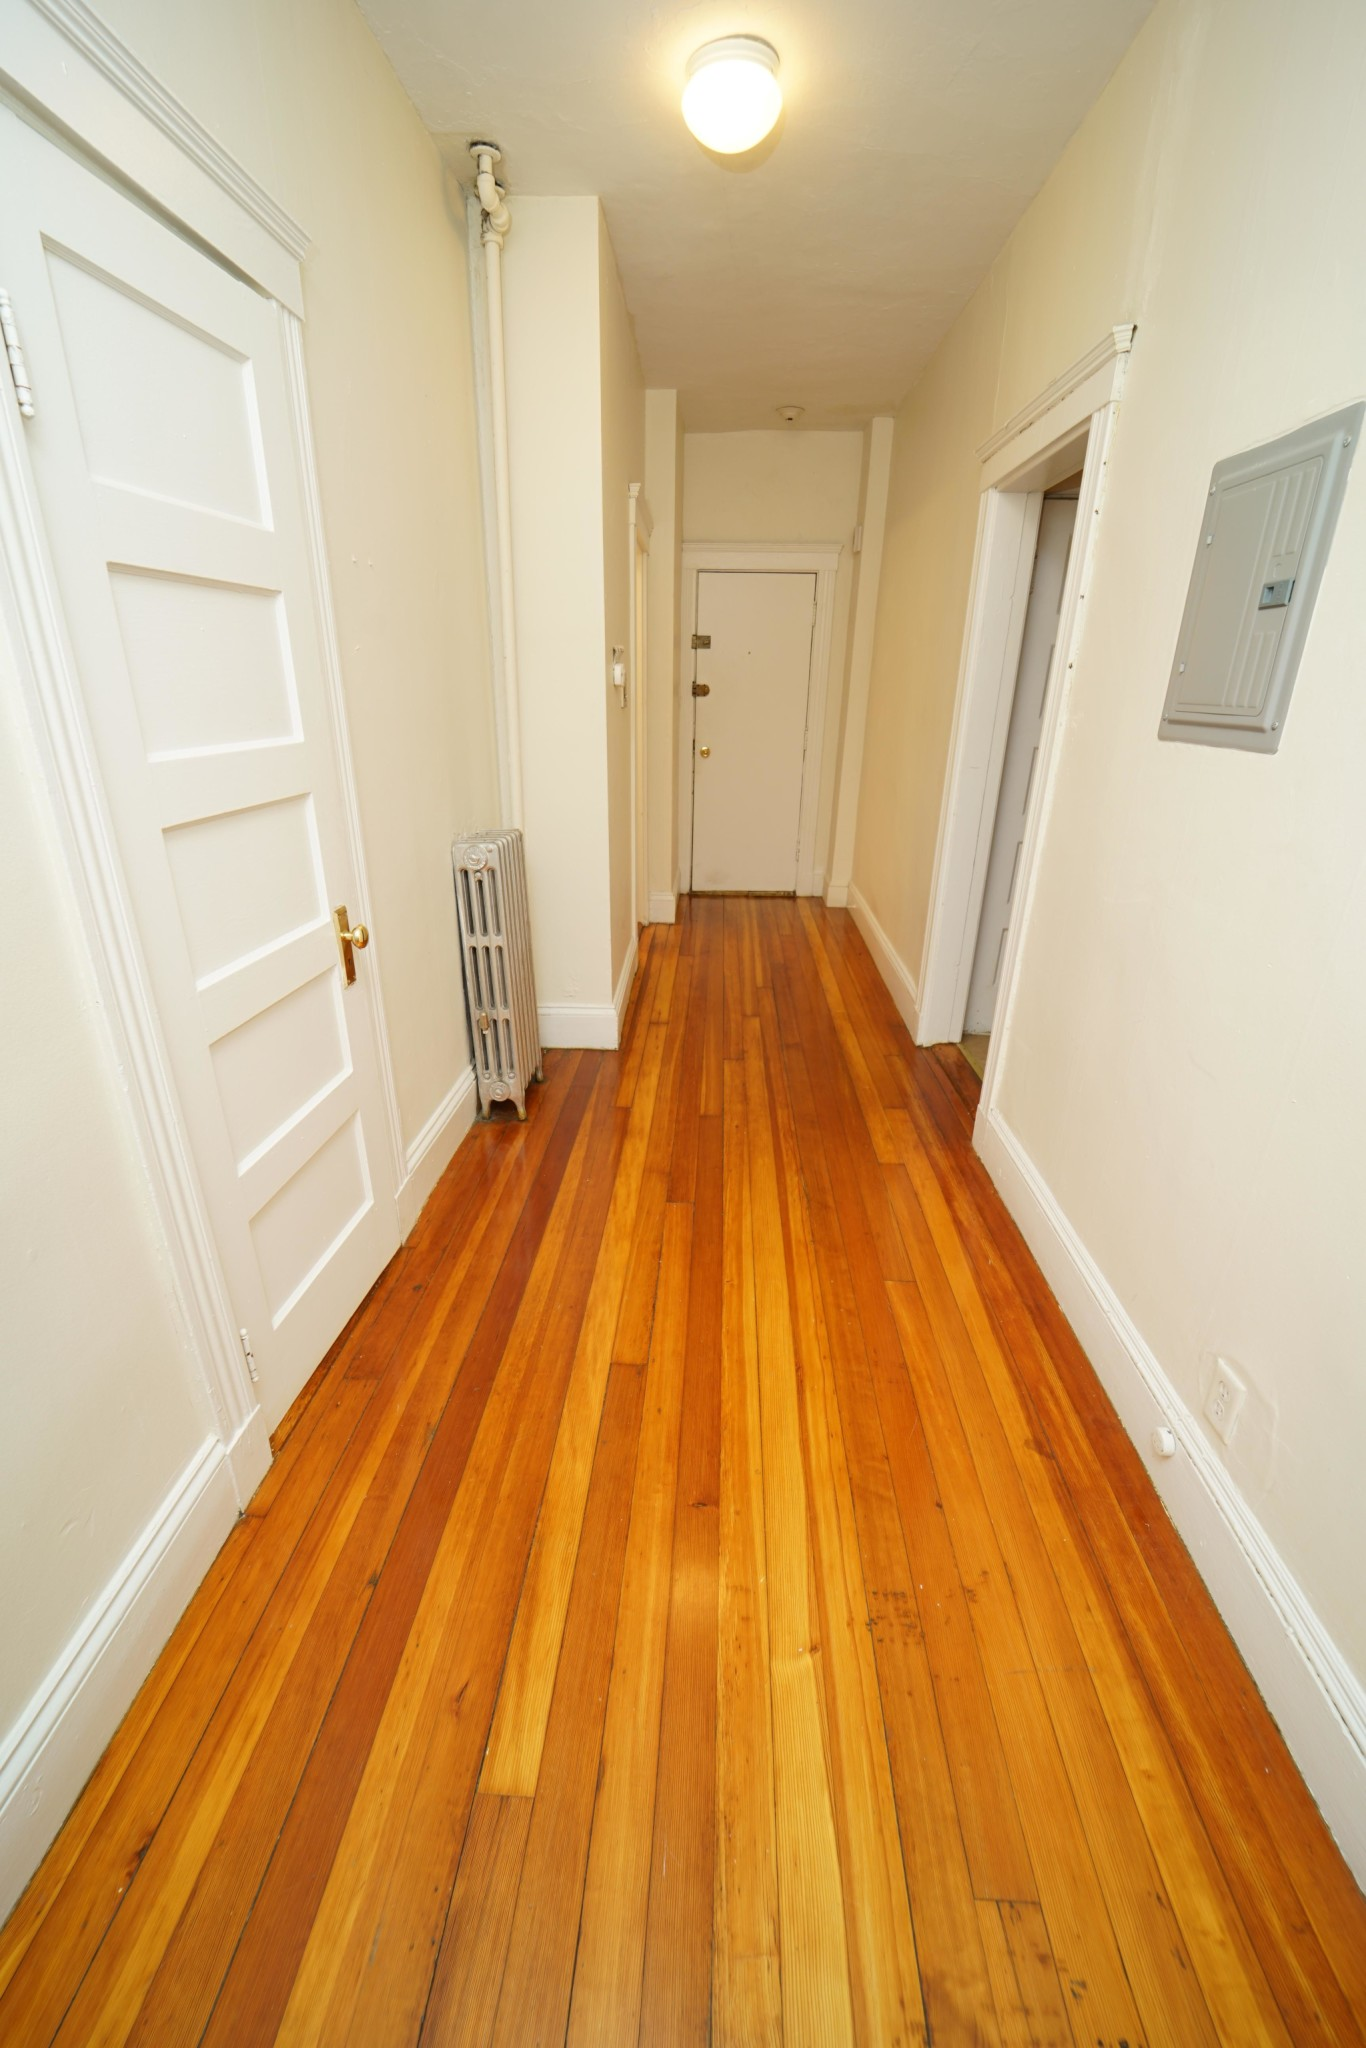 1 Bed, 1 Bath apartment in Boston, Allston for $1,725